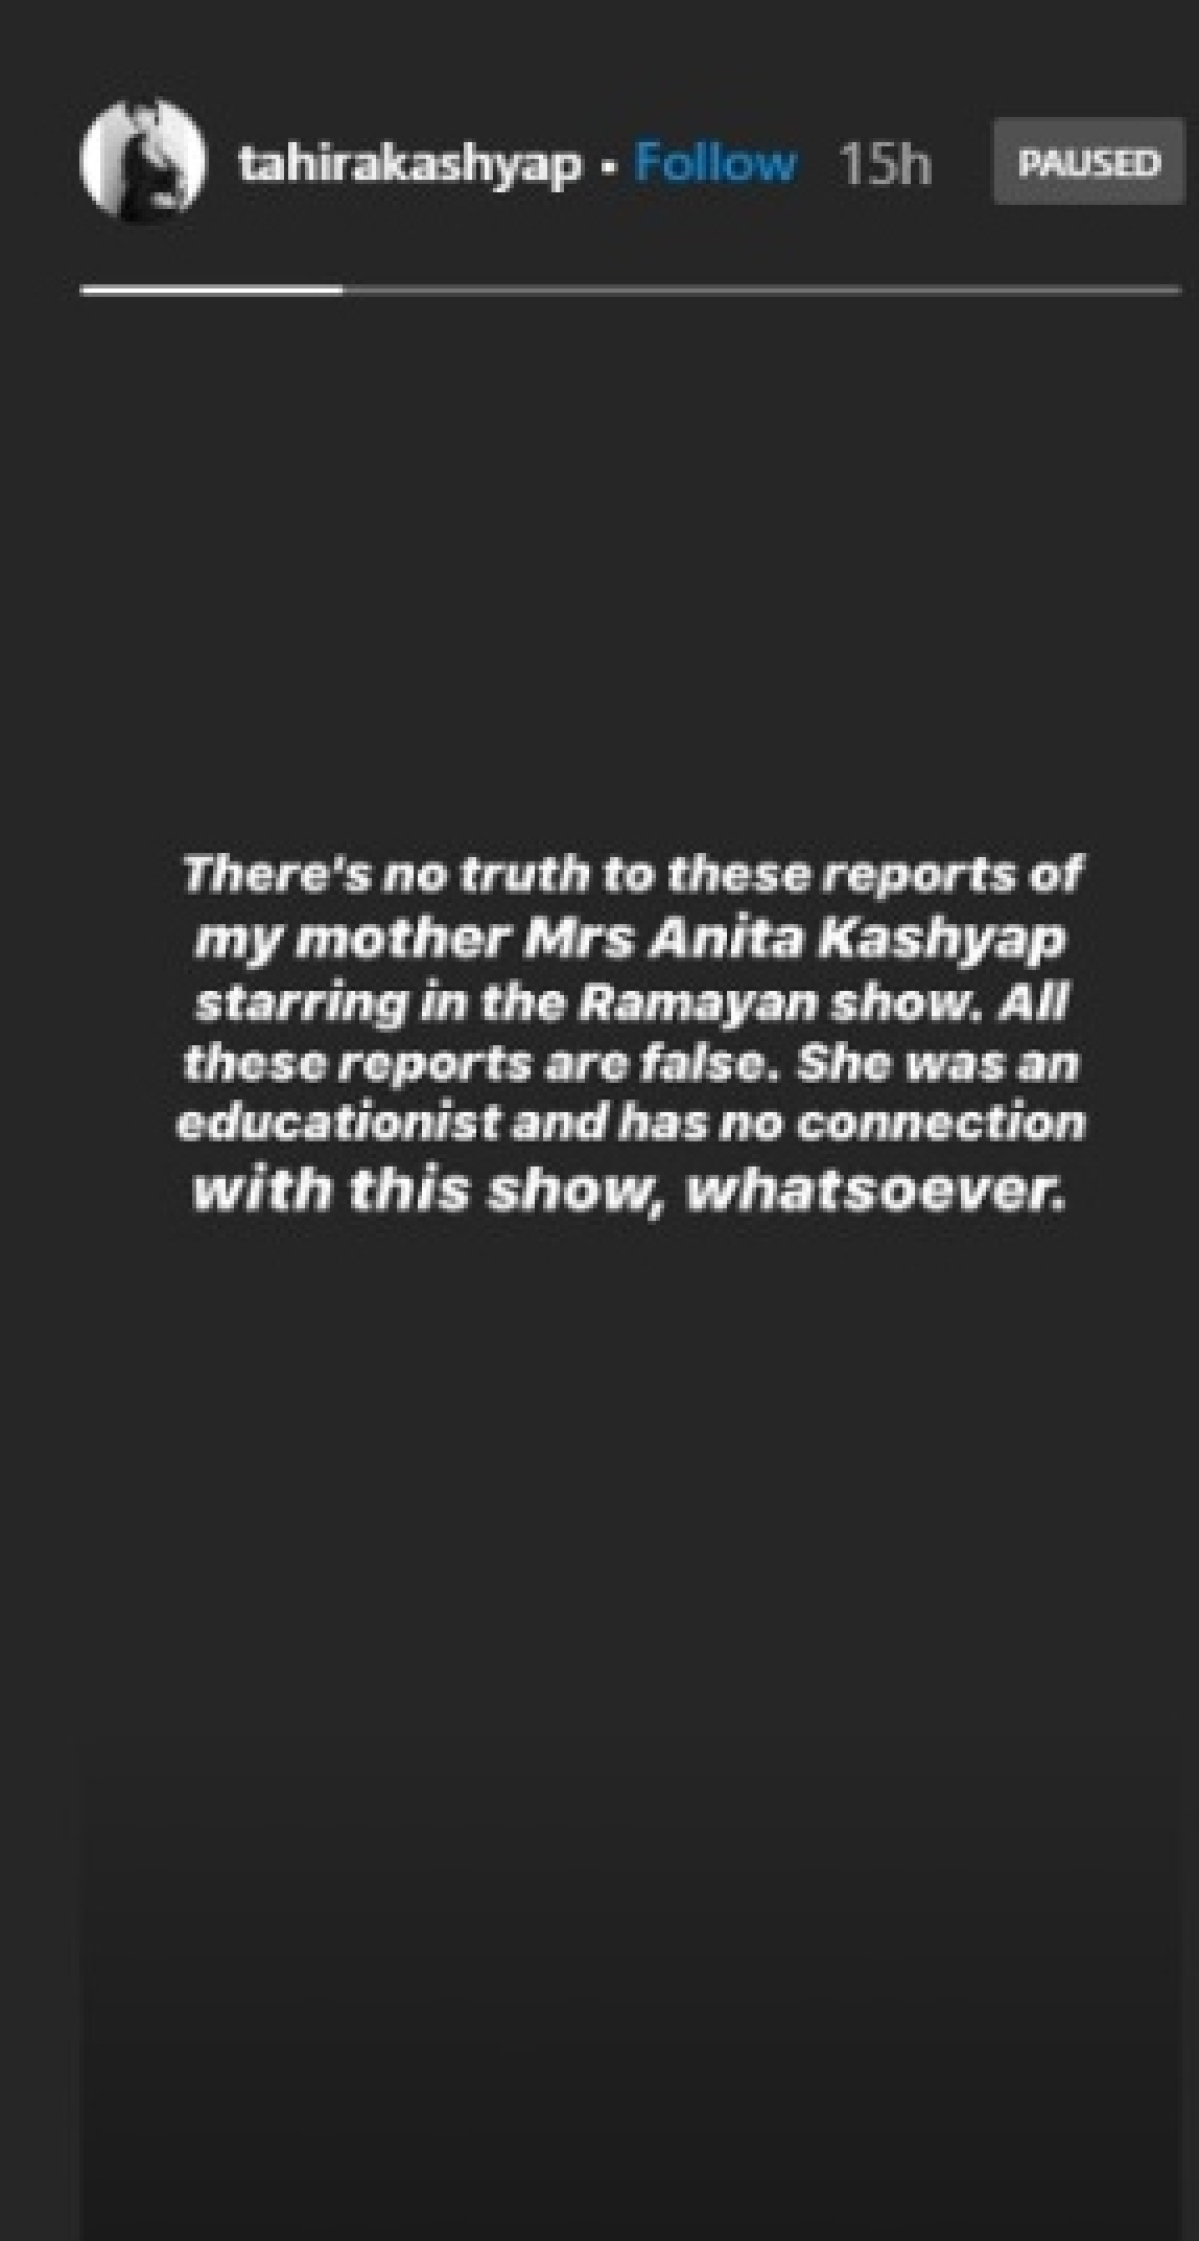 Tahira Kashyap rubbishes reports of mother Anita playing Trijata in 'Ramayan', says 'she was an educationist'